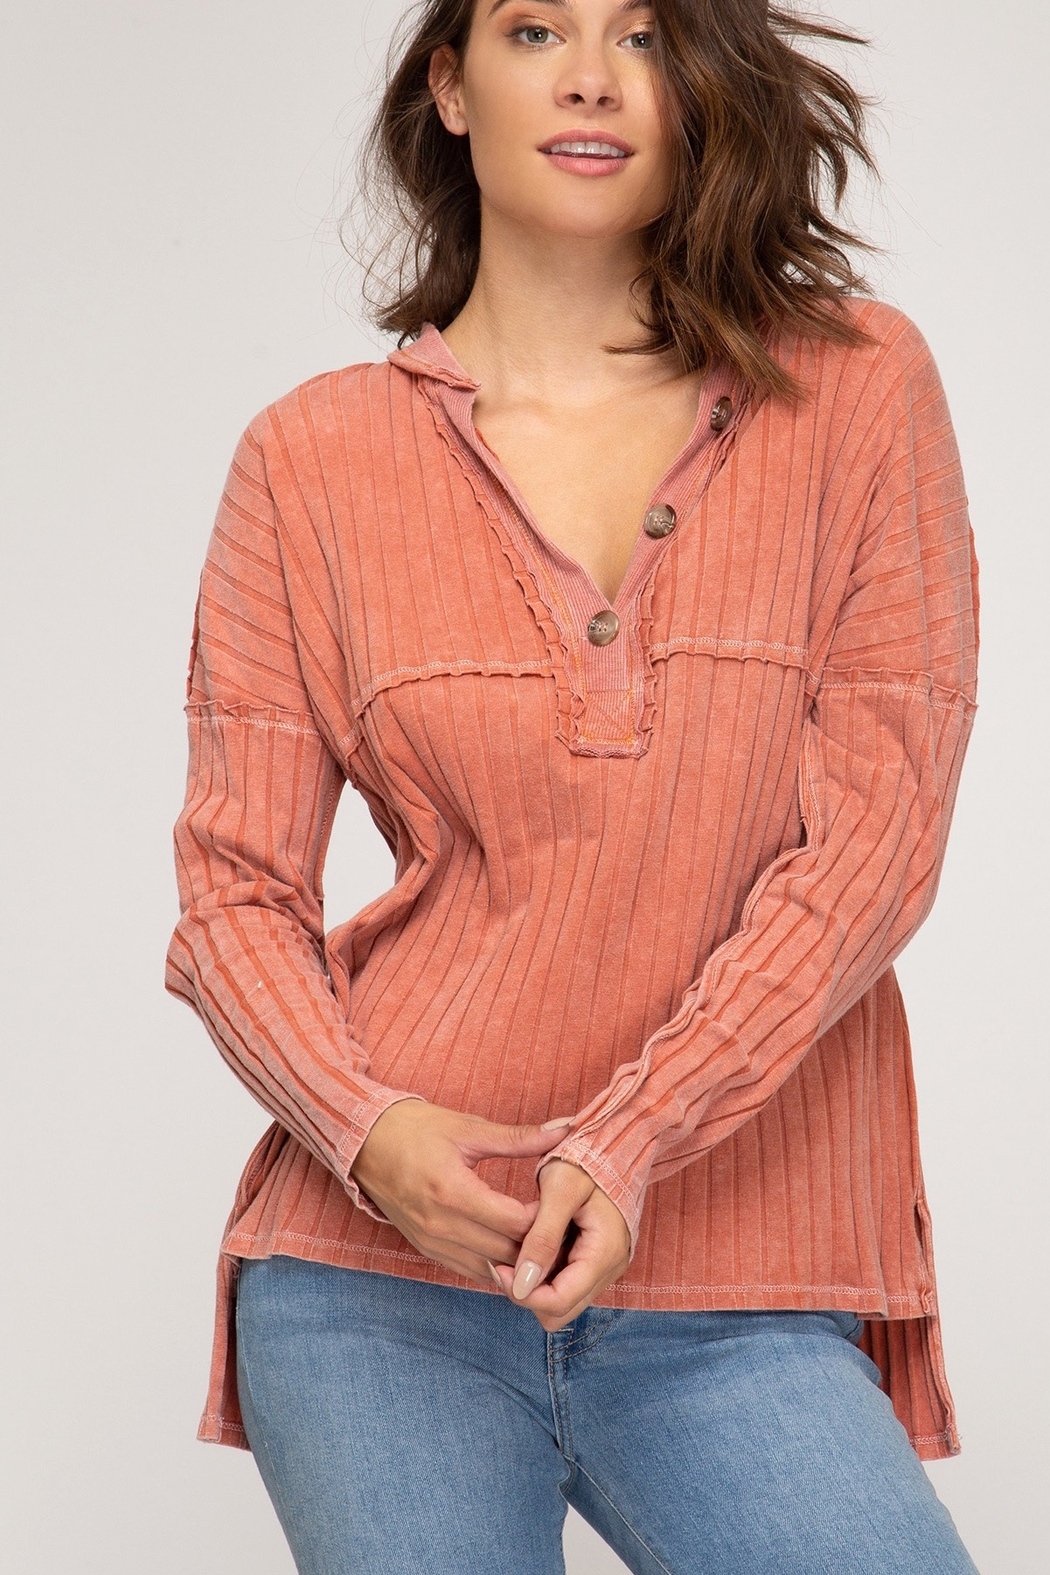 She and Sky LONG SLEEVE RIB KNIT TOP WITH FRONT BUTTON PLACKET DETAIL - Front Cropped Image